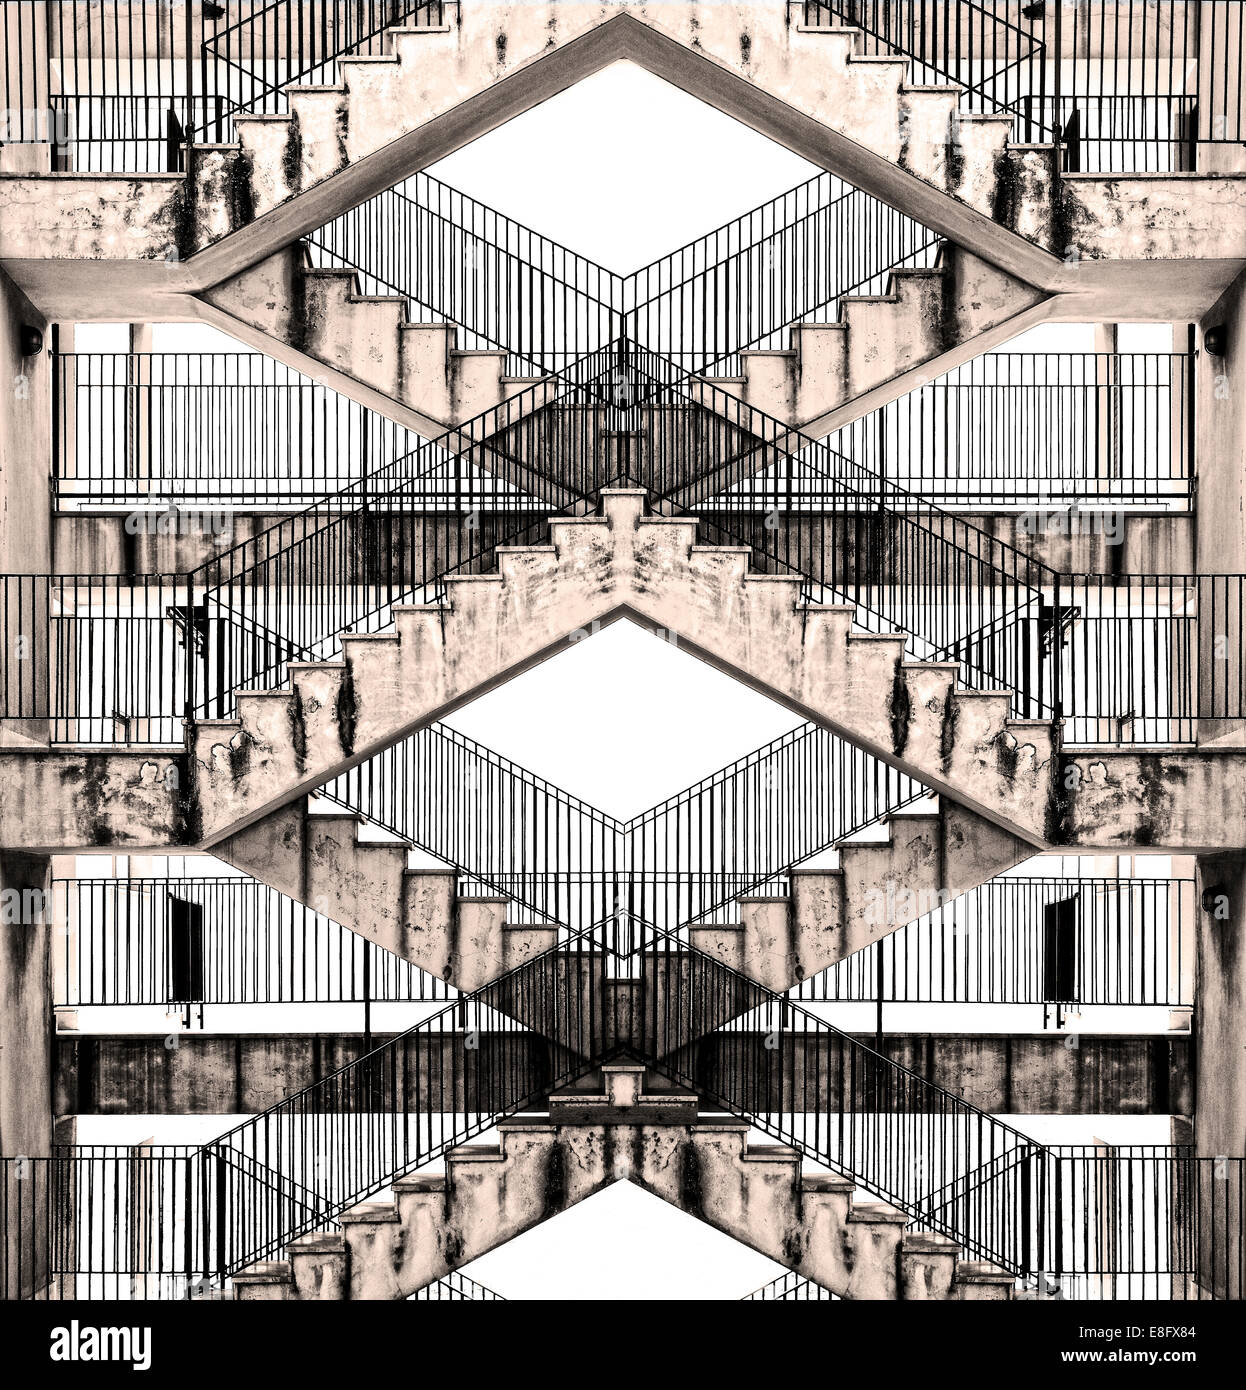 Italy, Stairs abstract photo - Stock Image